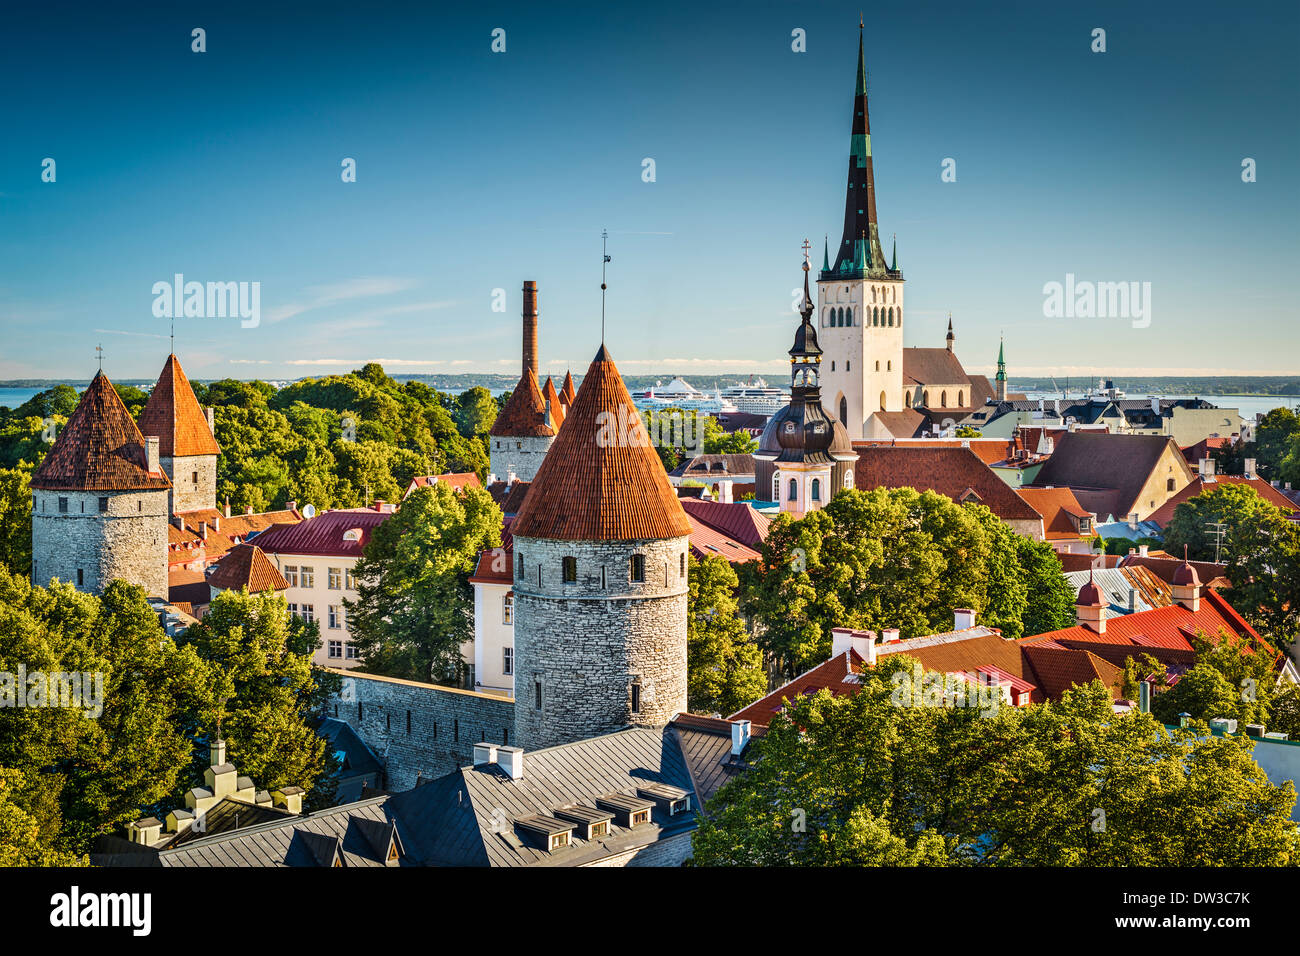 Tallinn, Estonie vue vieille ville à partir de la colline de Toompea. Photo Stock